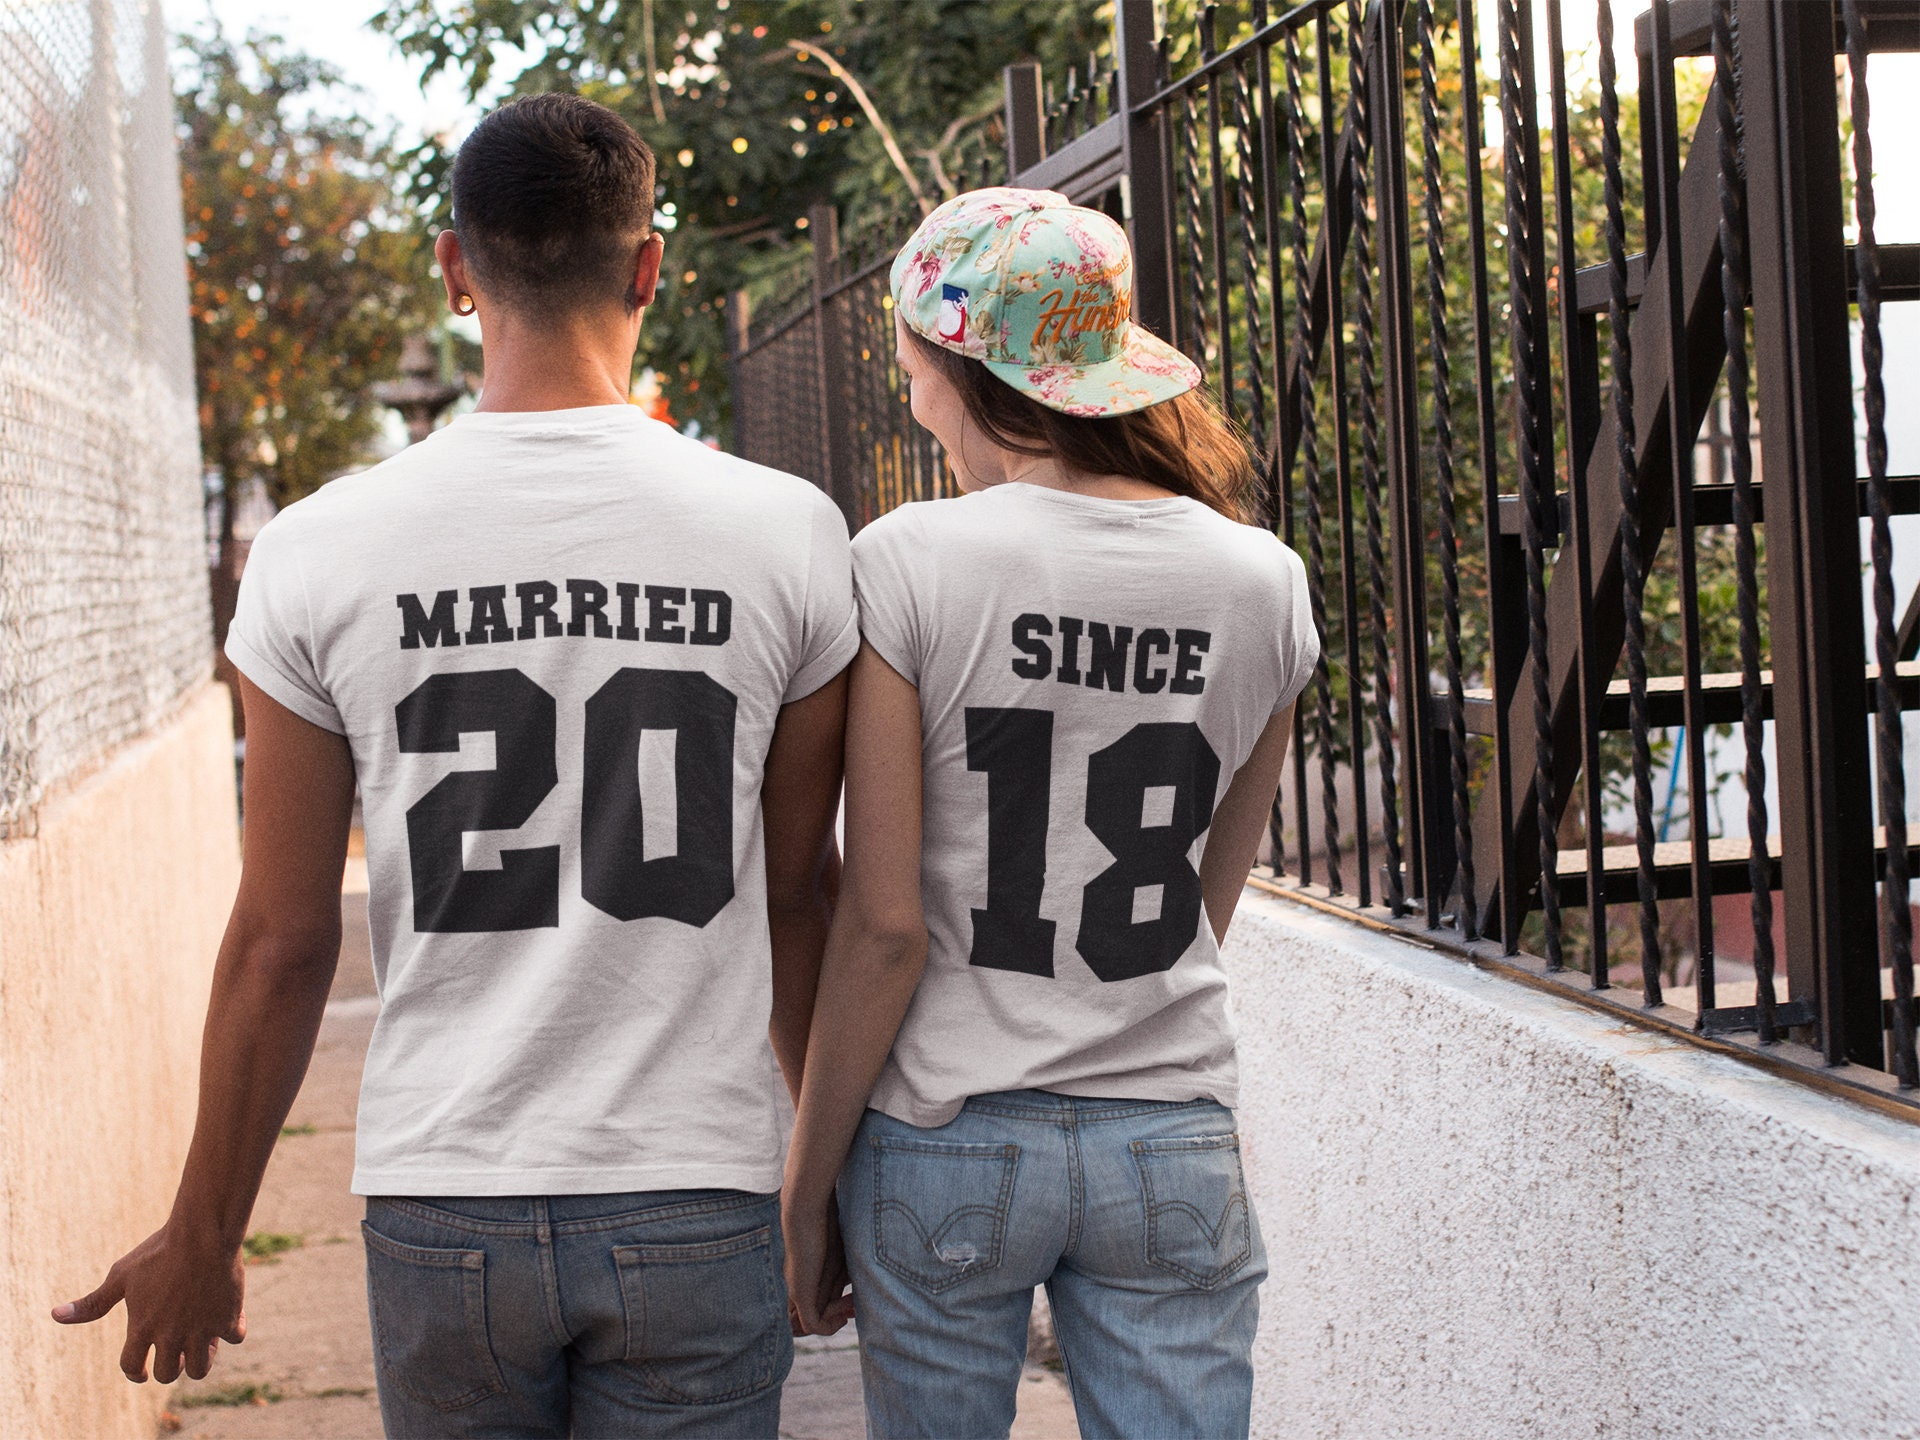 ac05a09192 Married since shirts just married shirts honeymoon shirts | Etsy